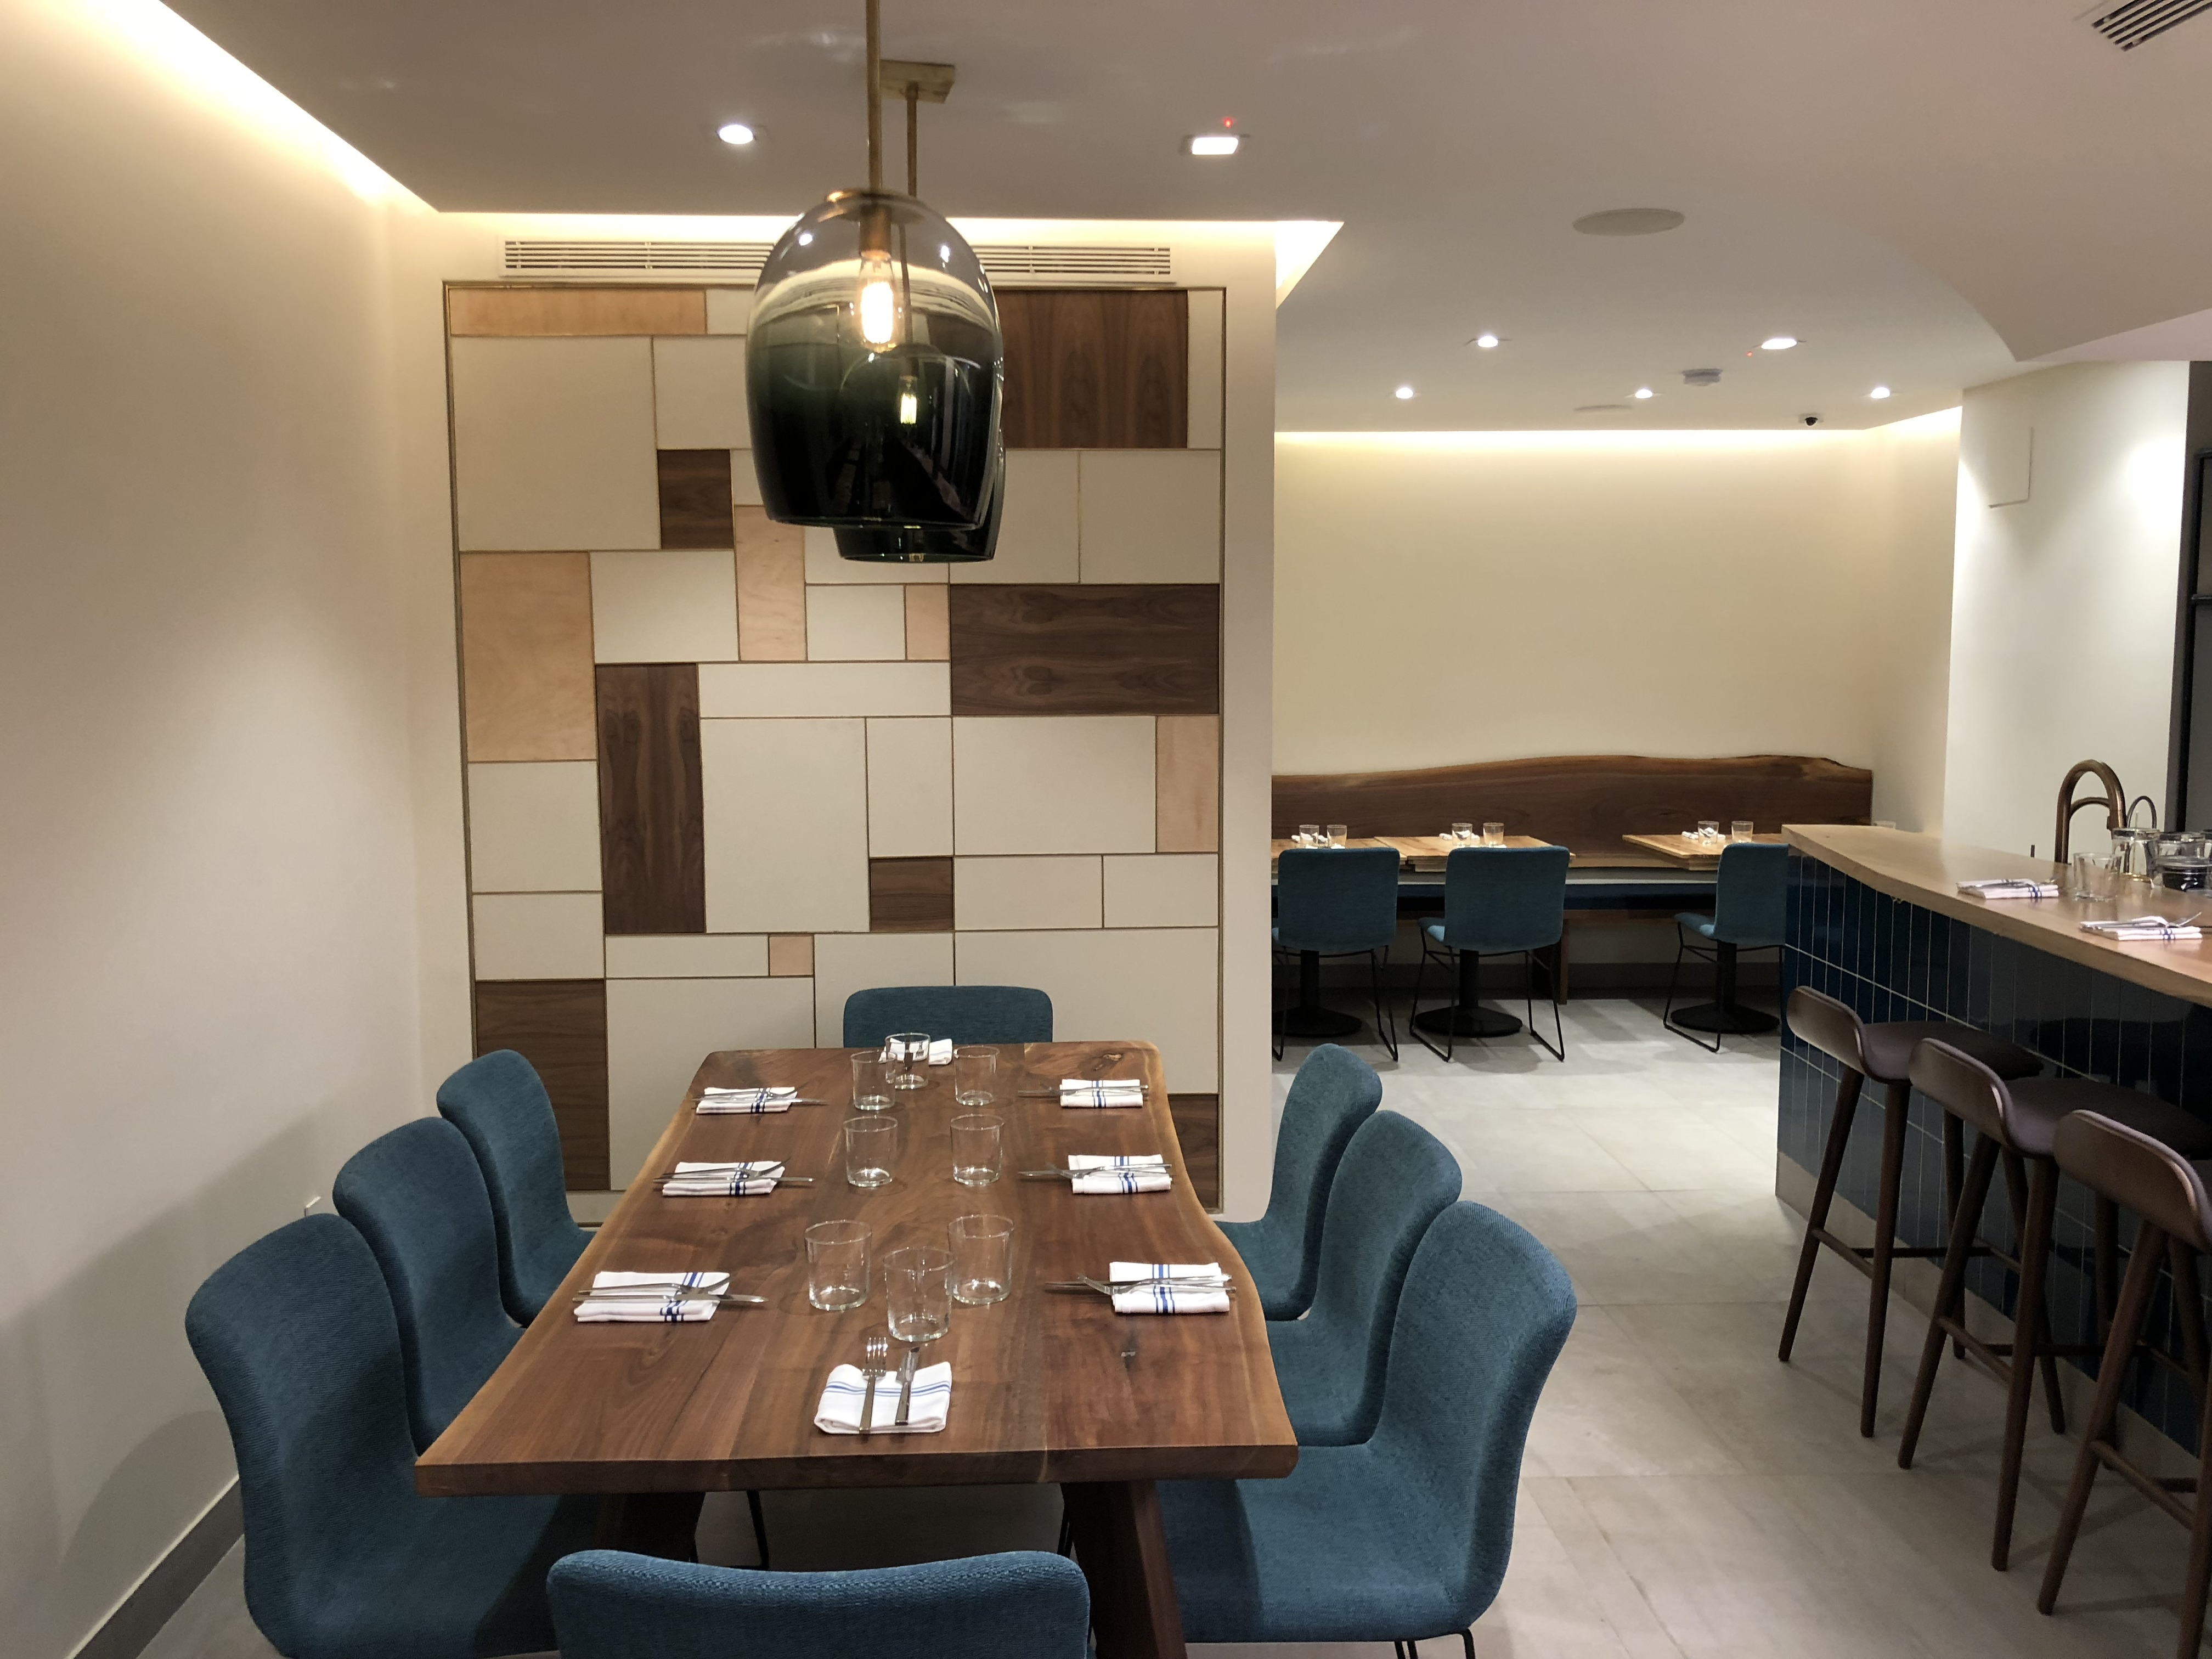 Abaita Will Be Open For Both Lunch And Dinner Seatings